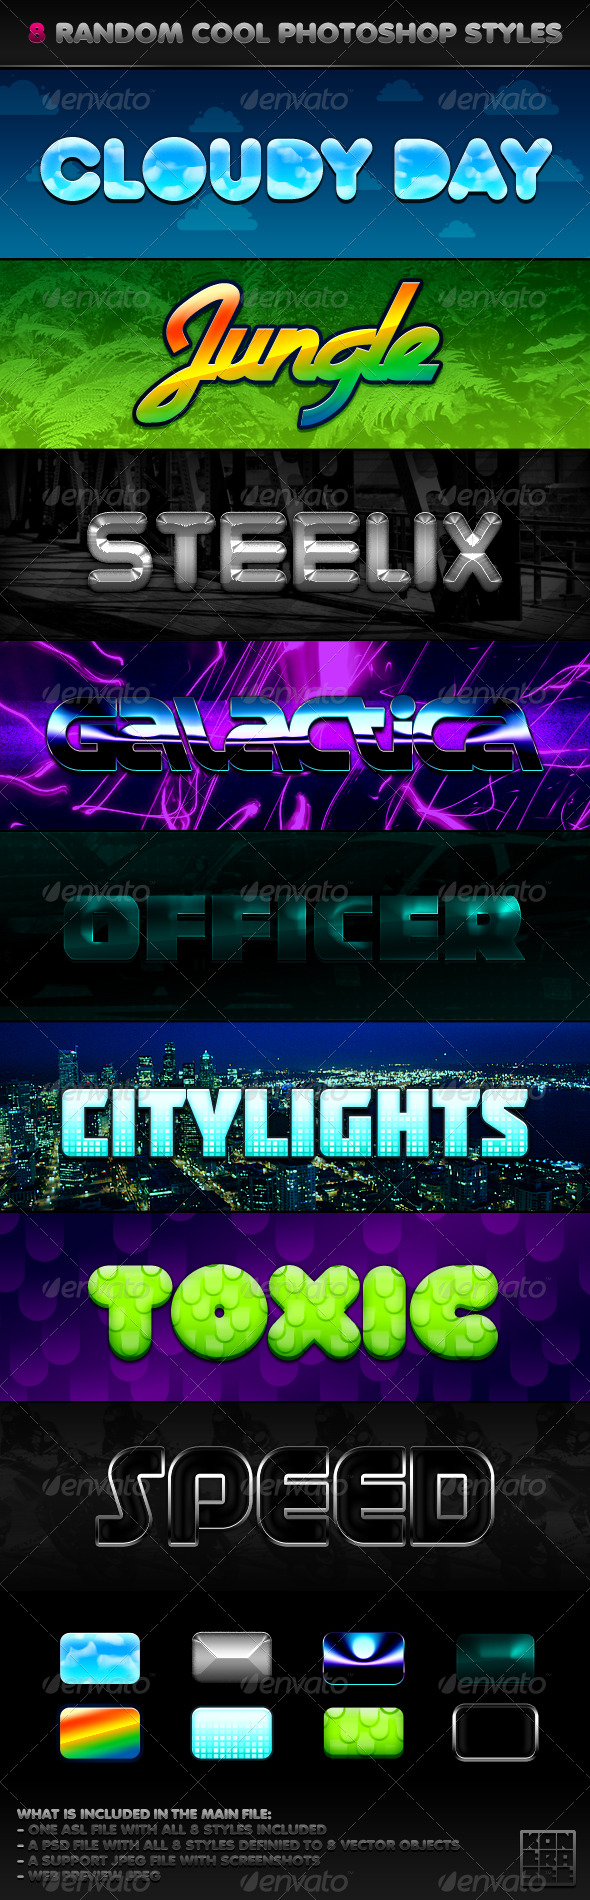 8 Random Cool Photoshop Styles - Text Effects Styles